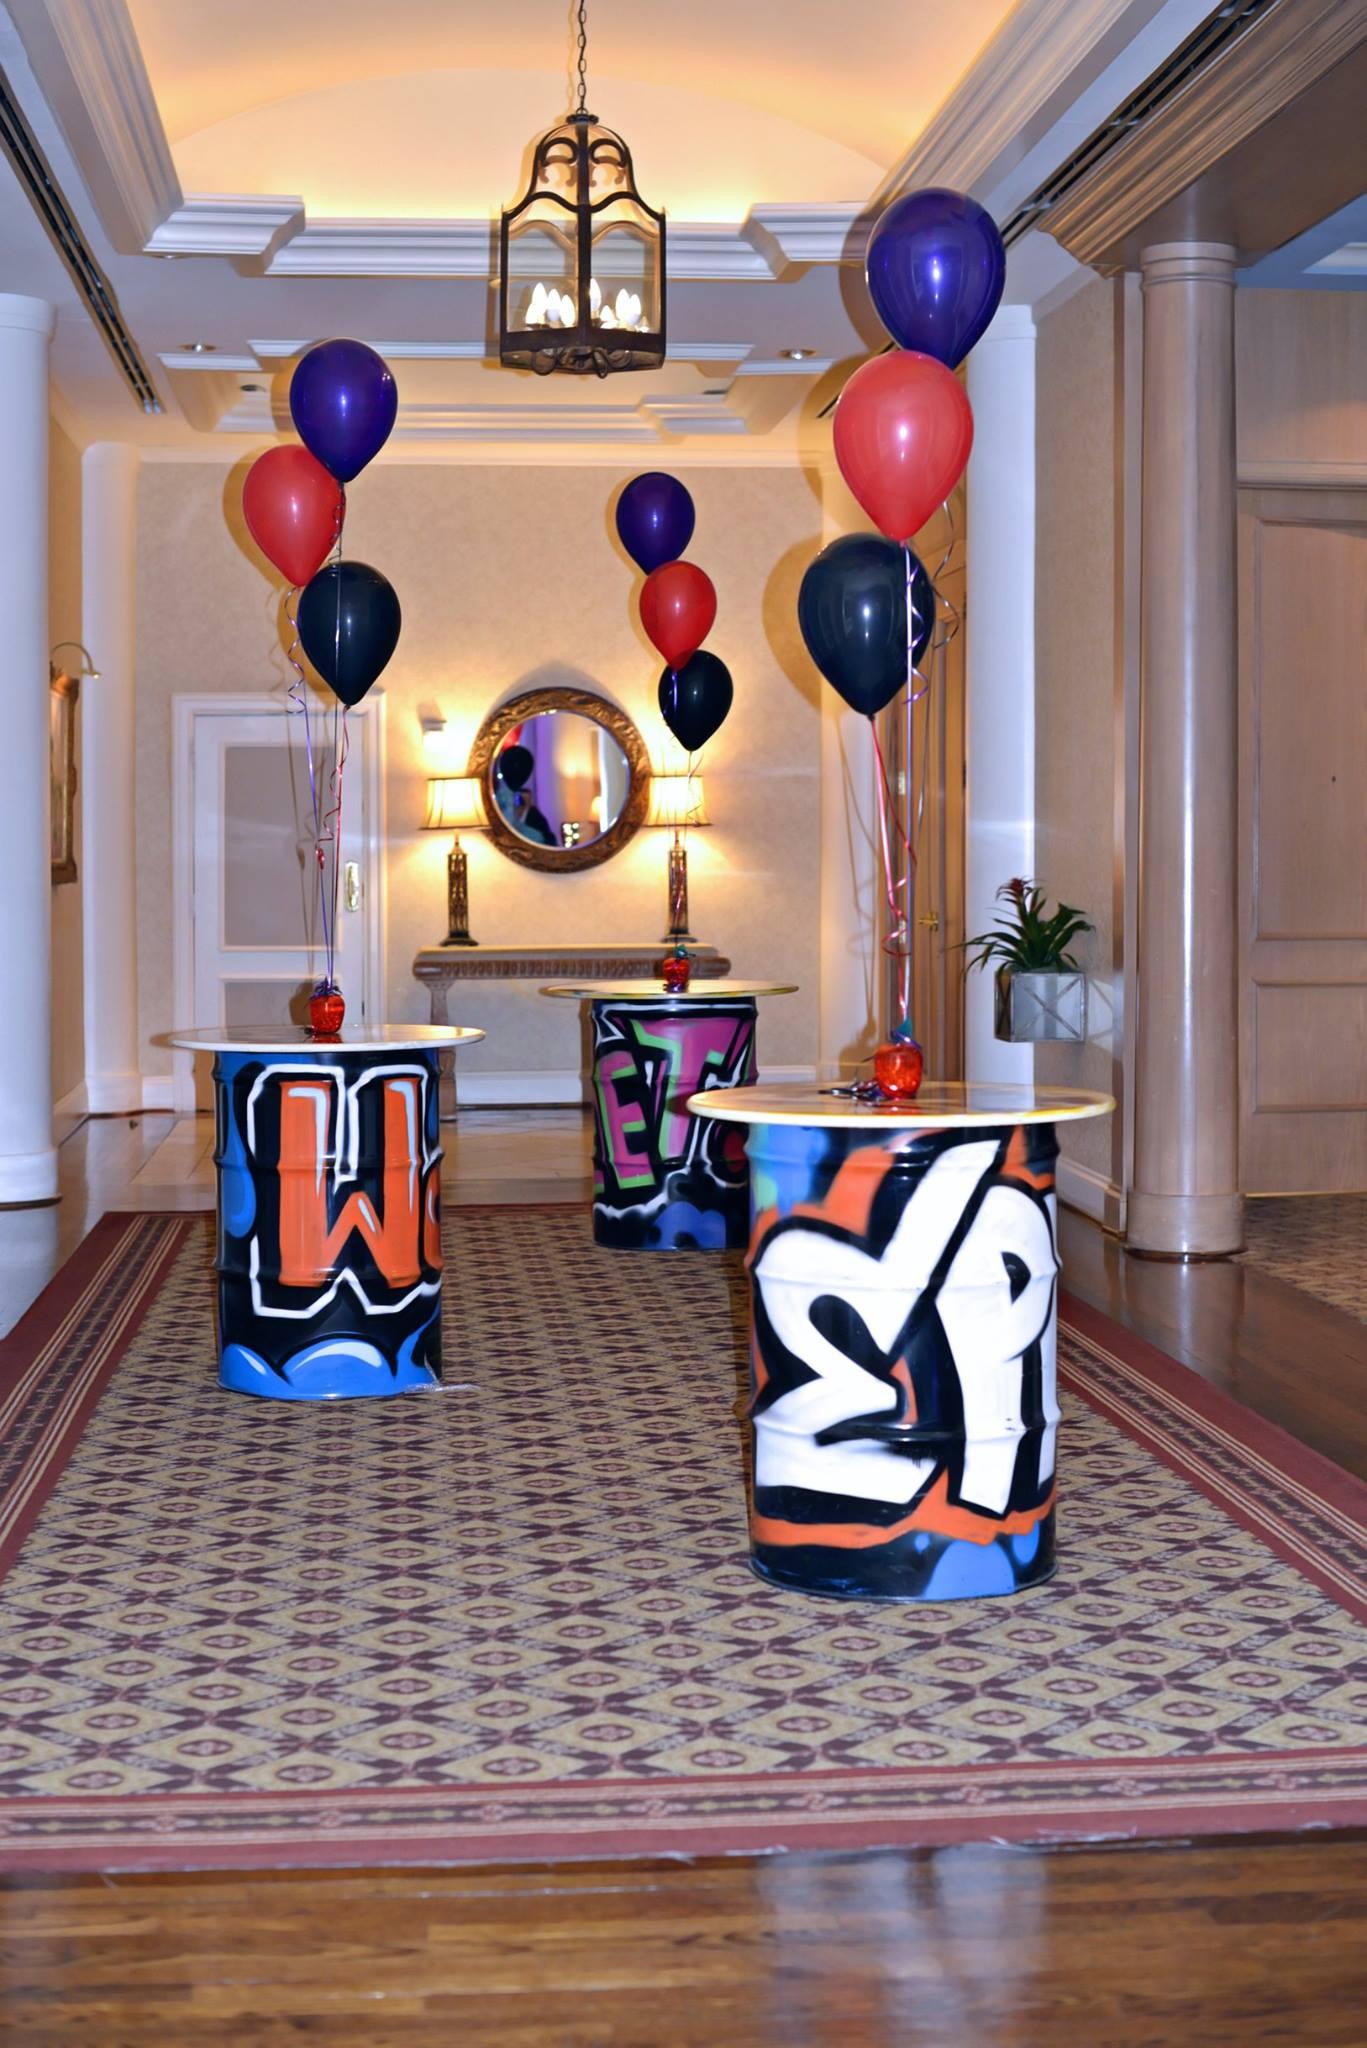 New York City Themed Bat Mitzvah - Tie A Bow